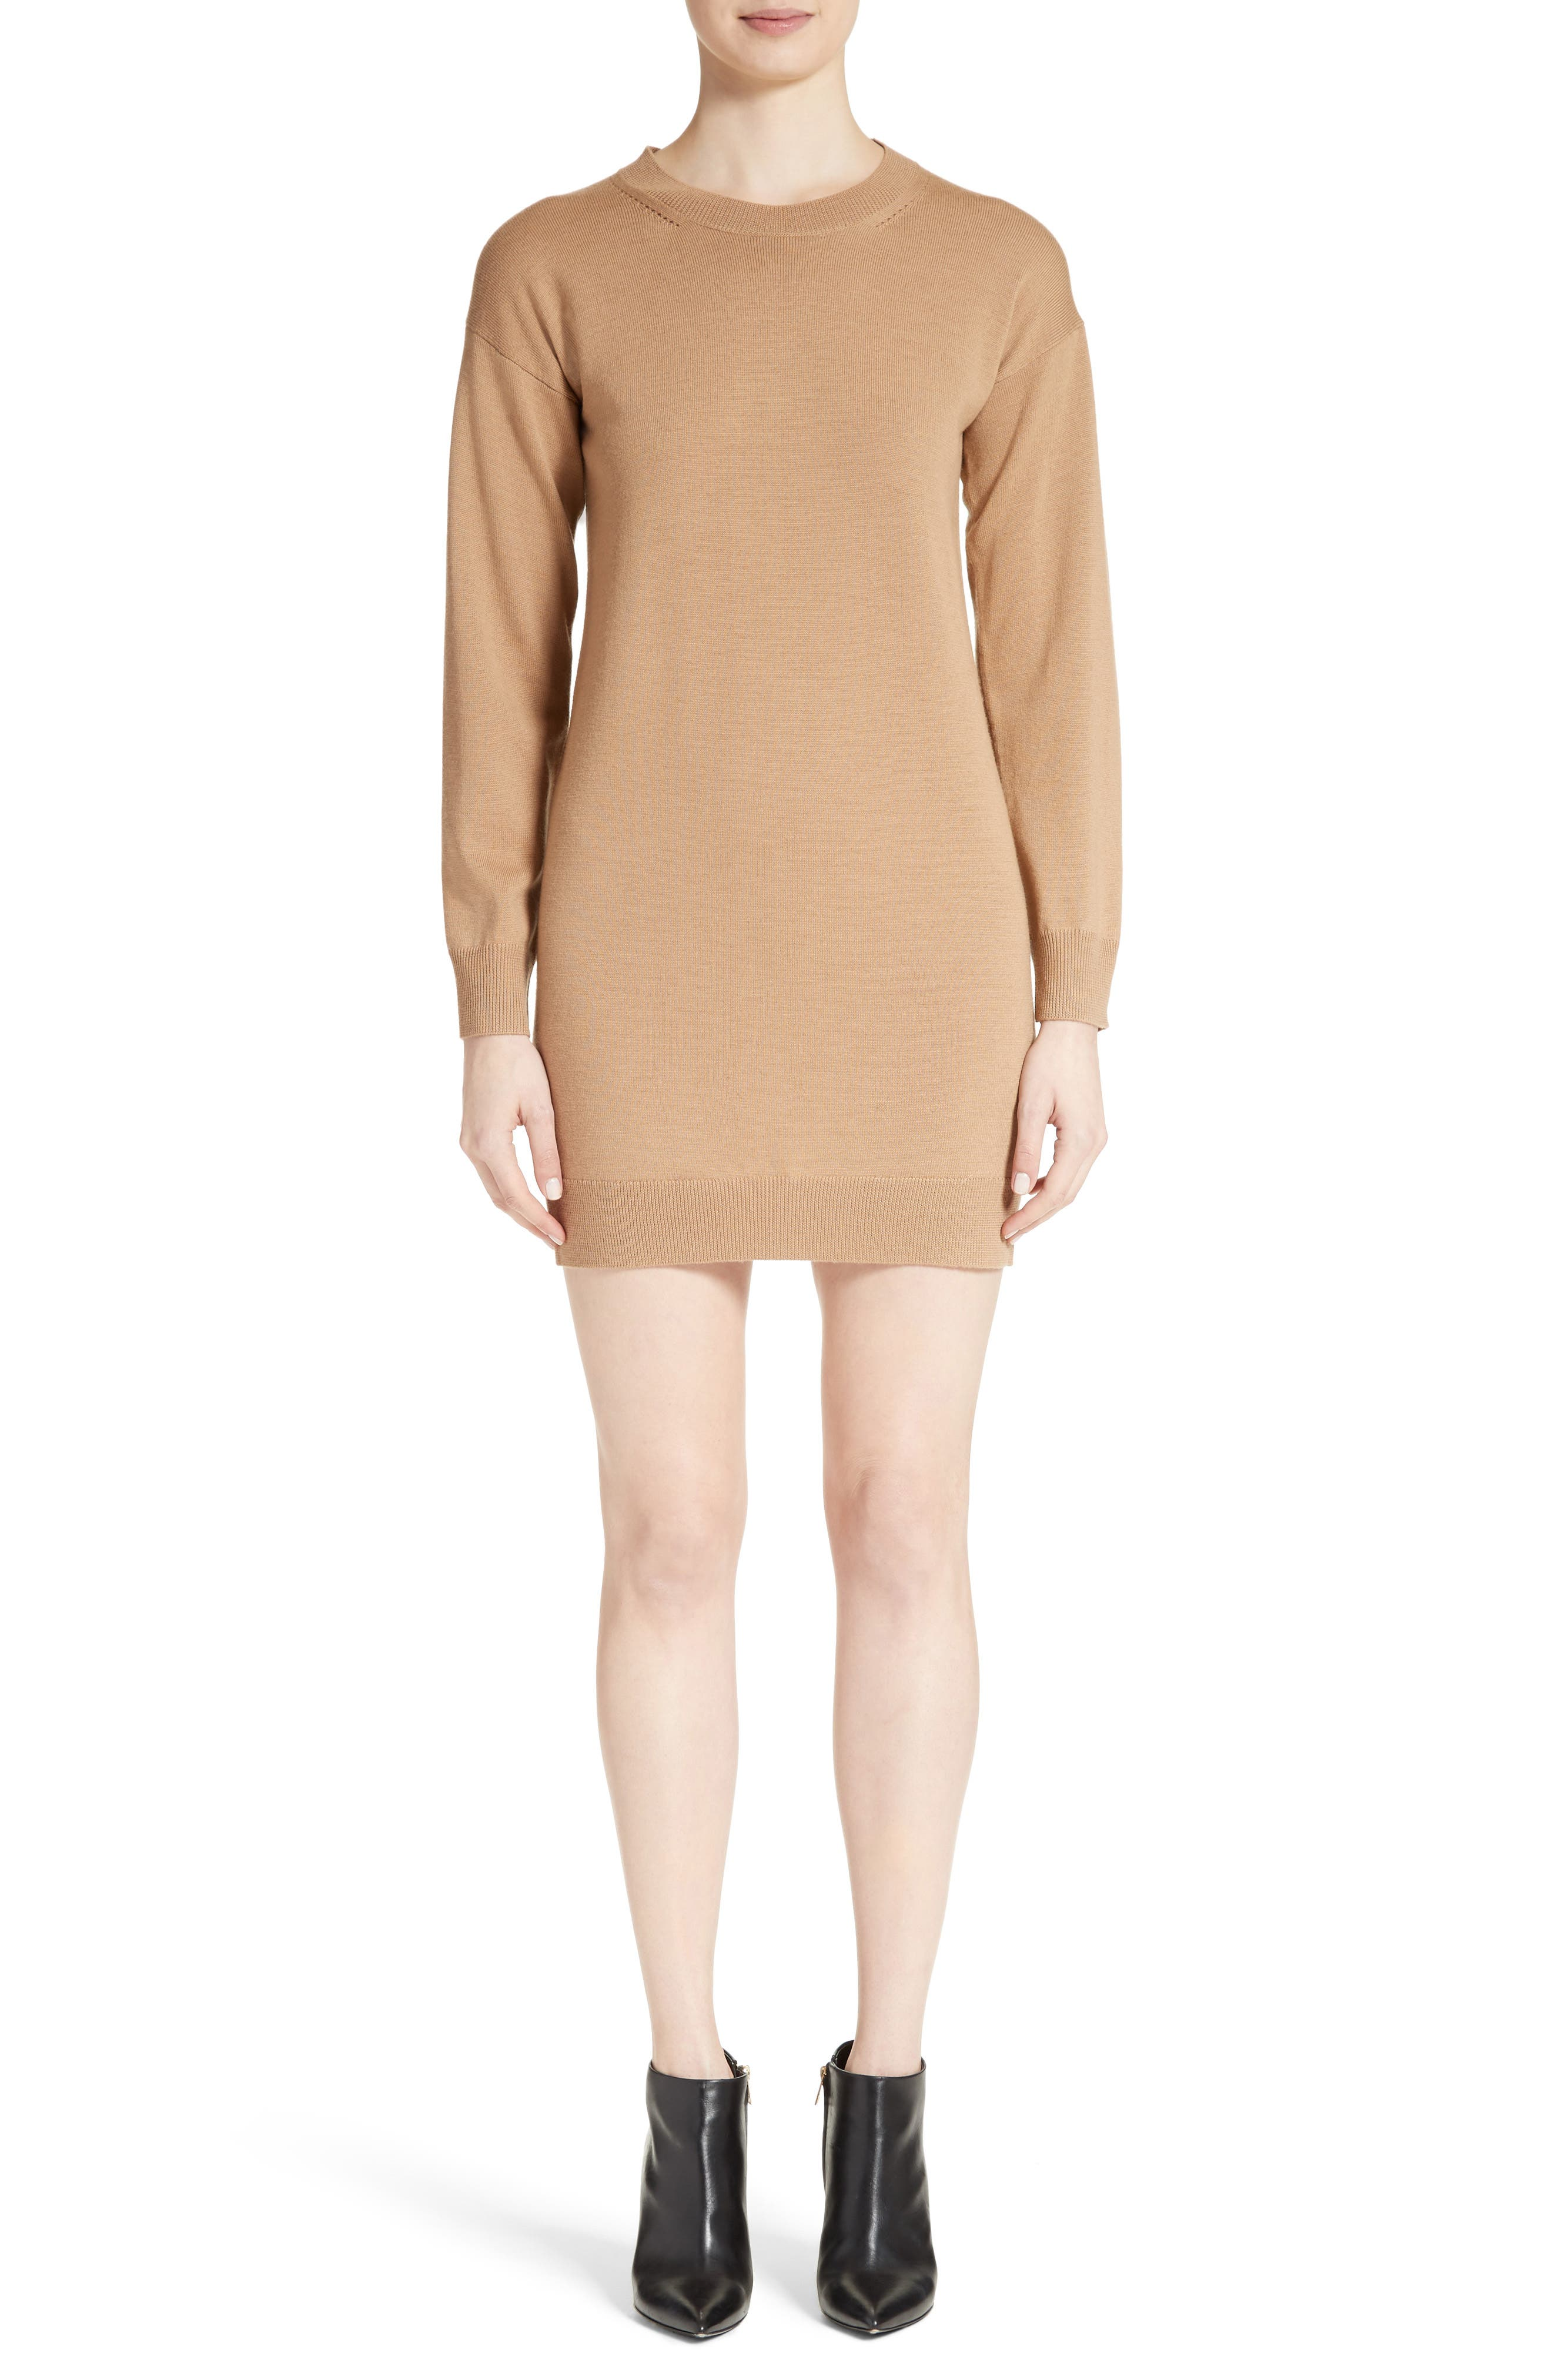 BURBERRY,                             Alewater Elbow Patch Merino Wool Dress,                             Main thumbnail 1, color,                             CAMEL